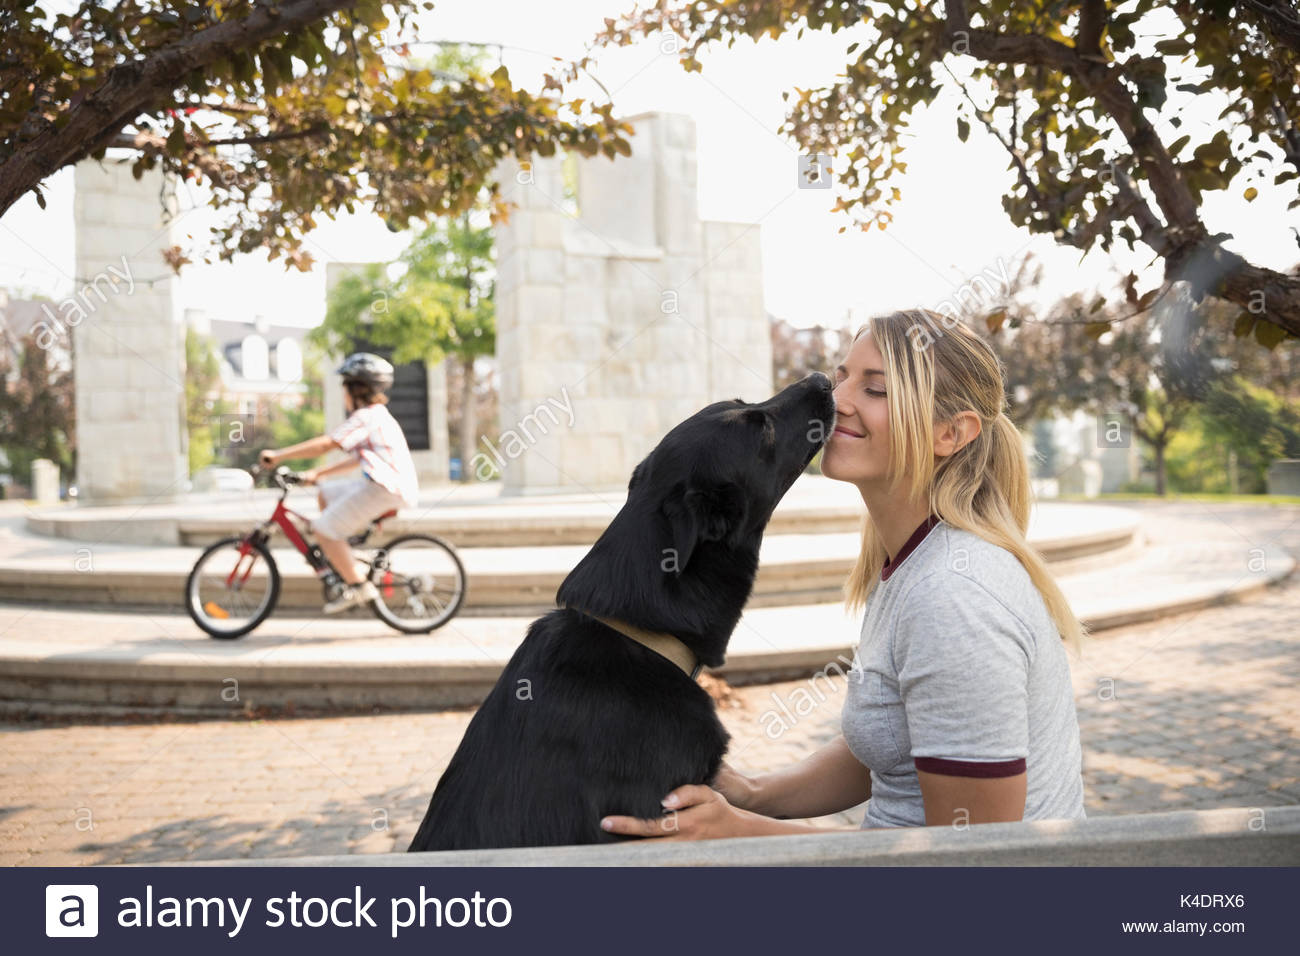 Dog kissing, licking female pet owner in park - Stock Image